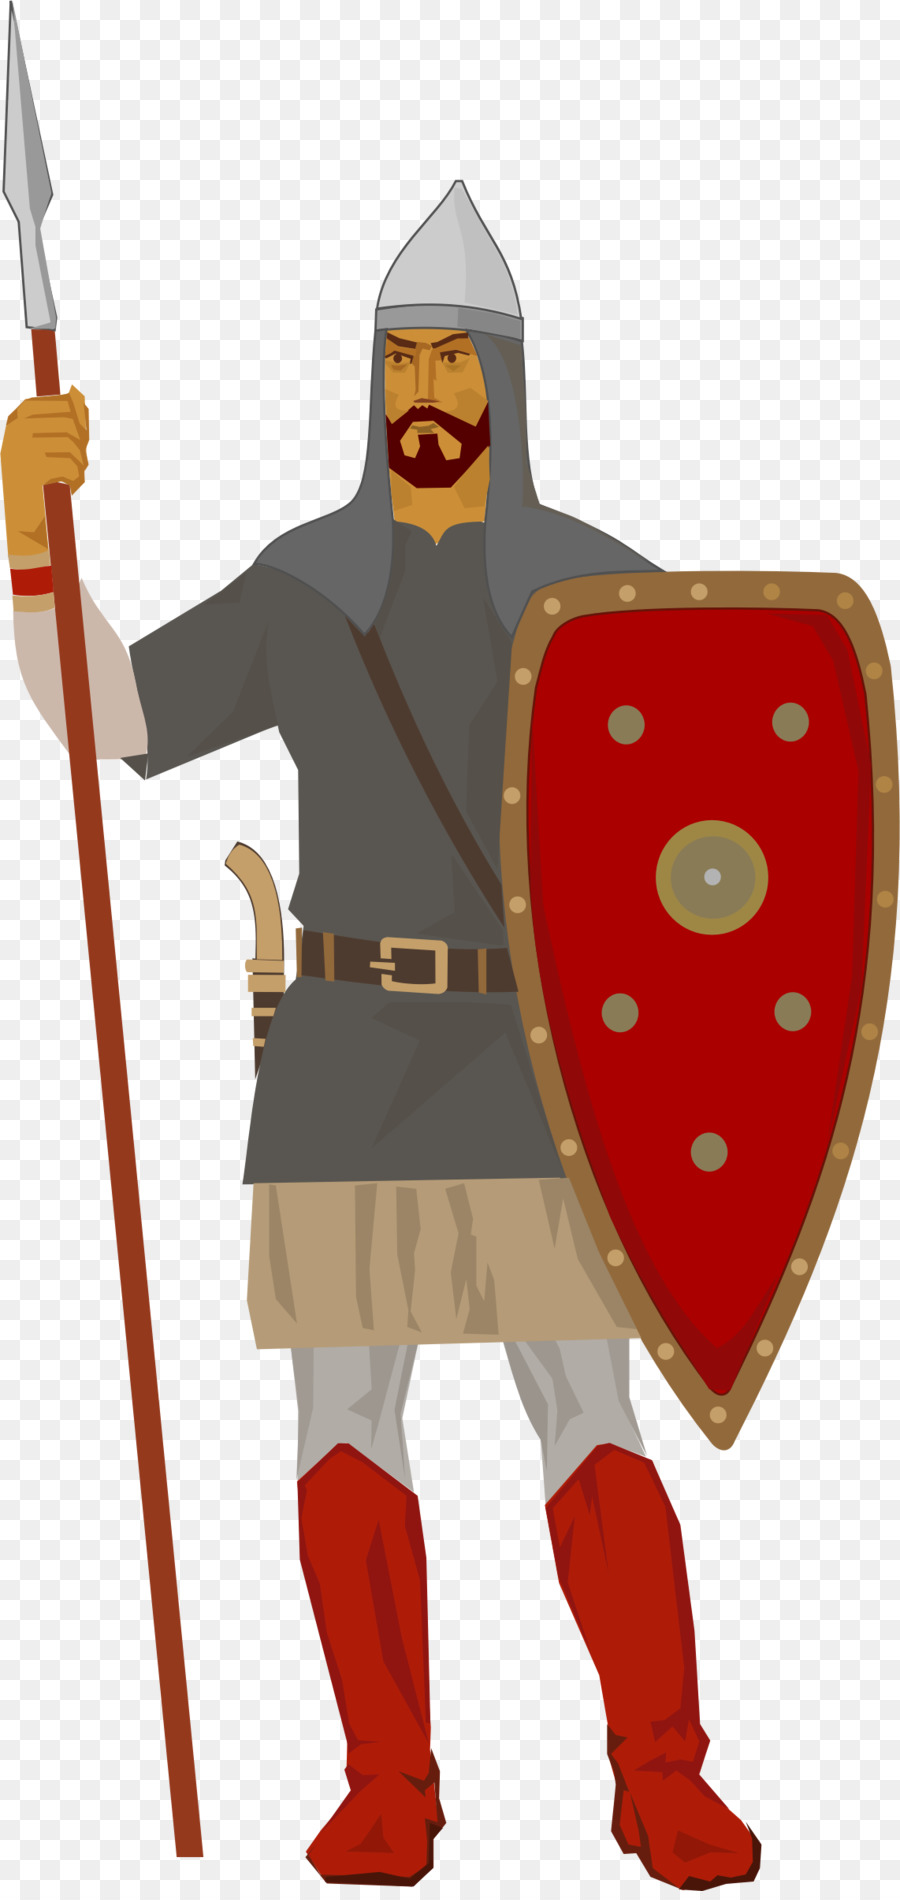 Transparency clipart soldier with shield clipart transparent library Soldier Cartoon clipart - Knight, Warrior, Soldier ... clipart transparent library